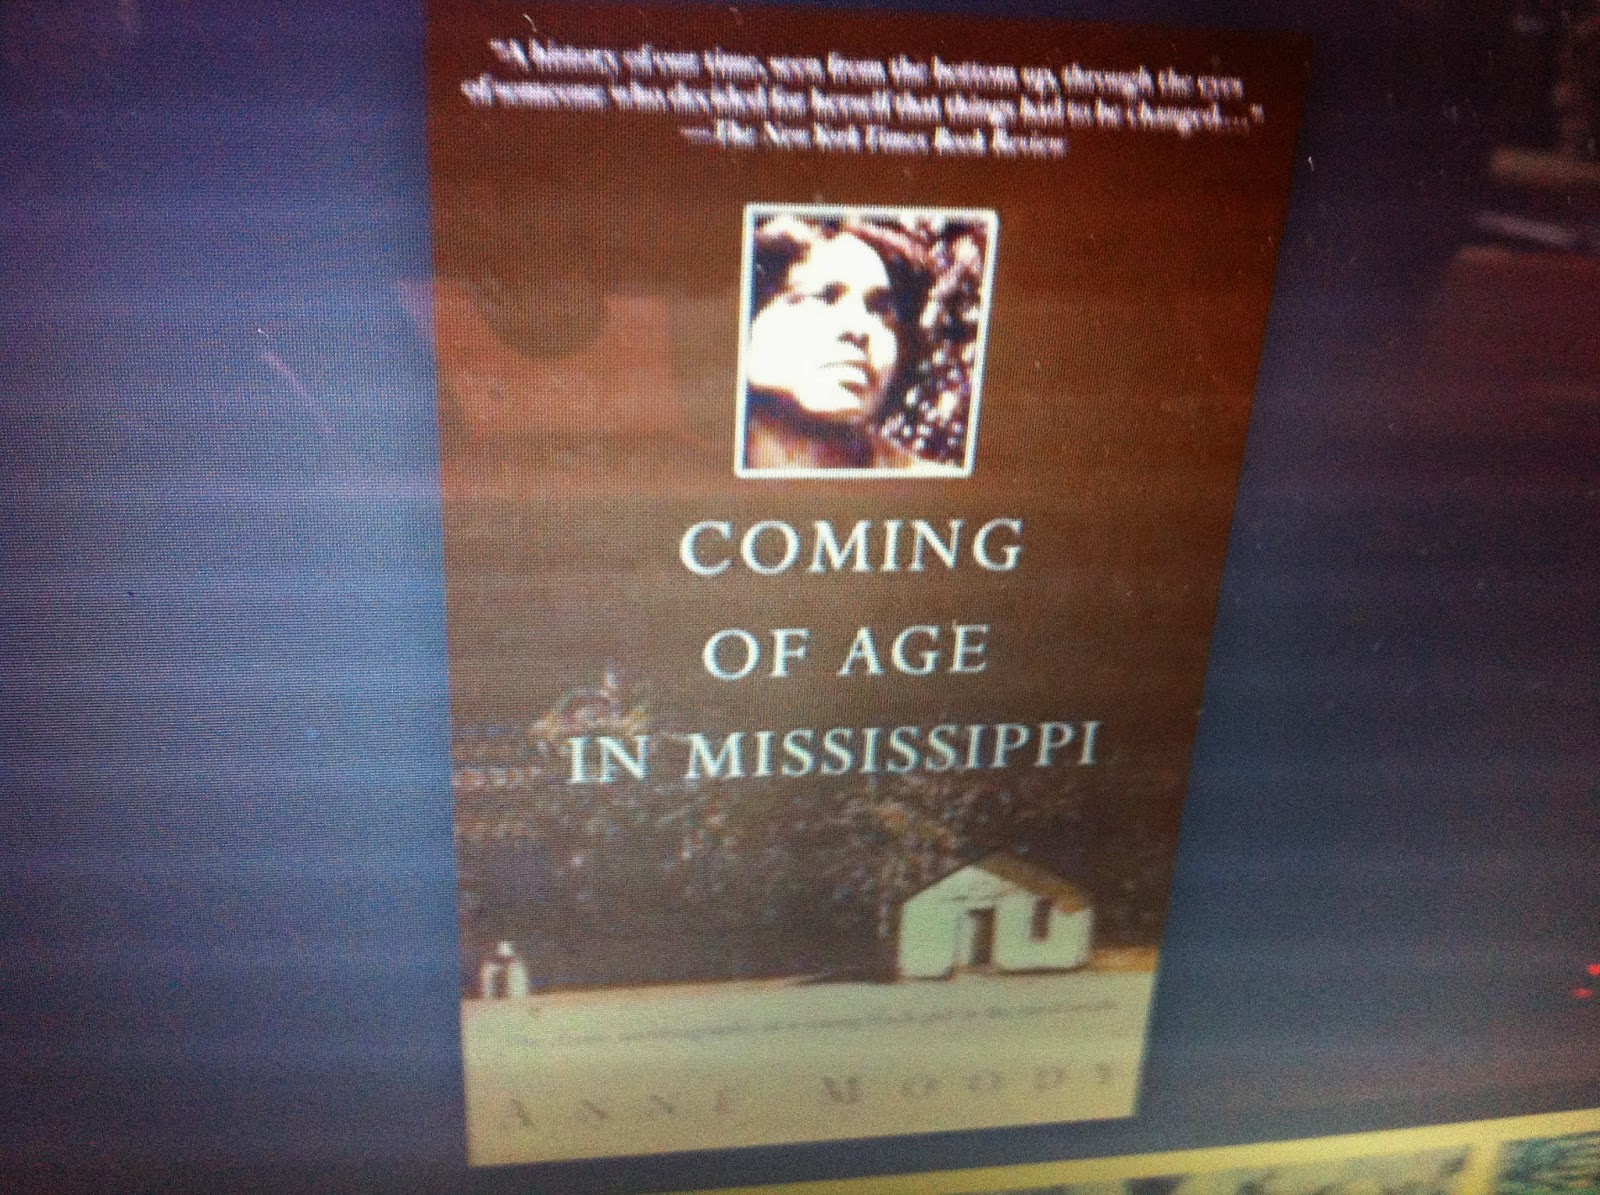 an analysis of the coming of age in mississippi a story by anne moody Coming of age in mississippi i loved the book because it told a story about a place i know at a time that i knew it, from another cultures perspective i can remember the fear of blacks and whites in mississippi at that time in history, the 50's and 60's, because i am a child of the south of that time period.